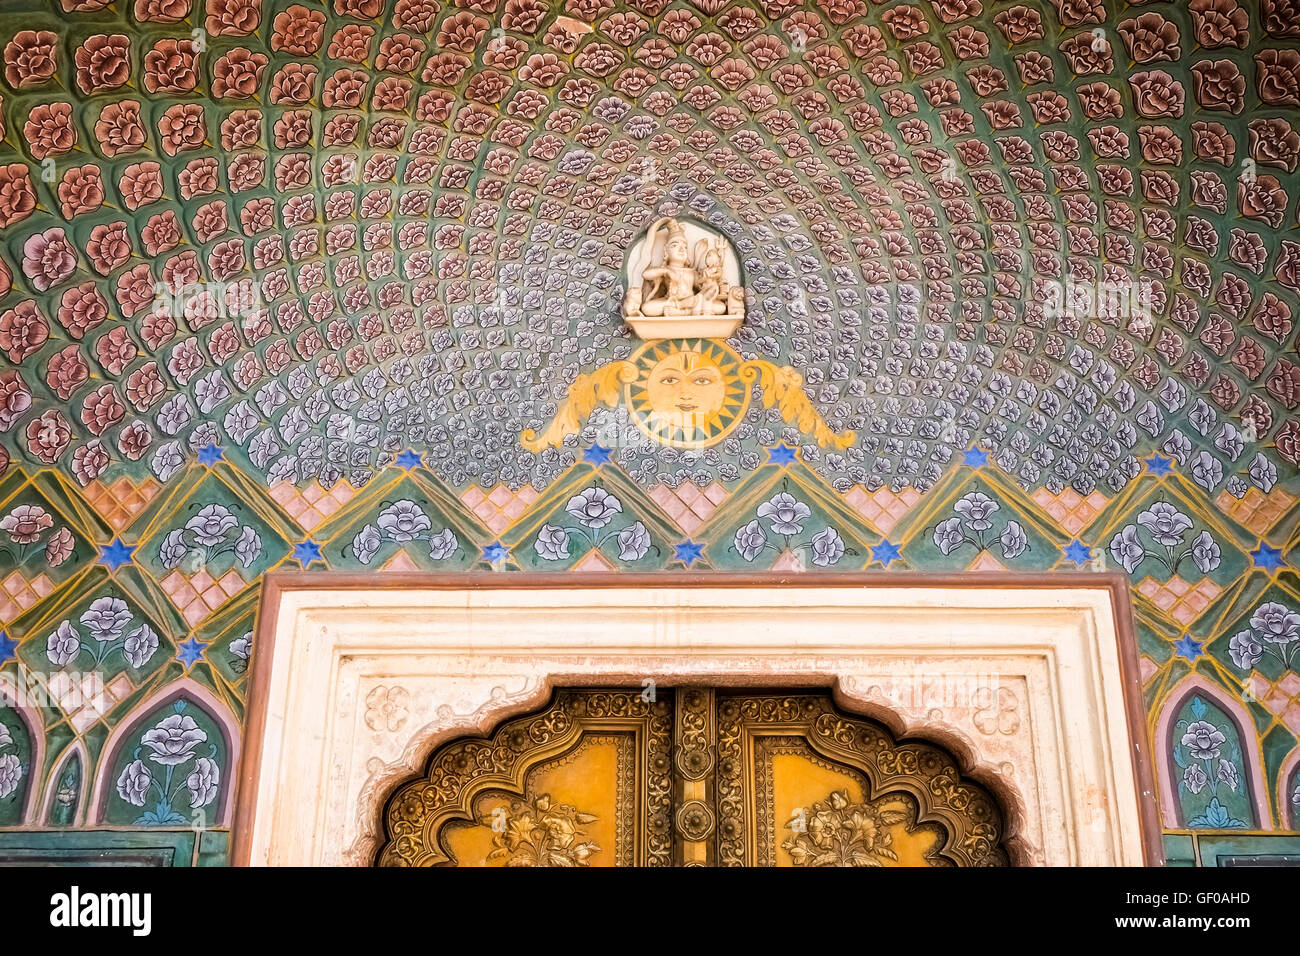 Ornate gateway and gate  at Chandra Mahal, one of the palaces in Jaipur's City Palace, Rajasthan, India. - Stock Image